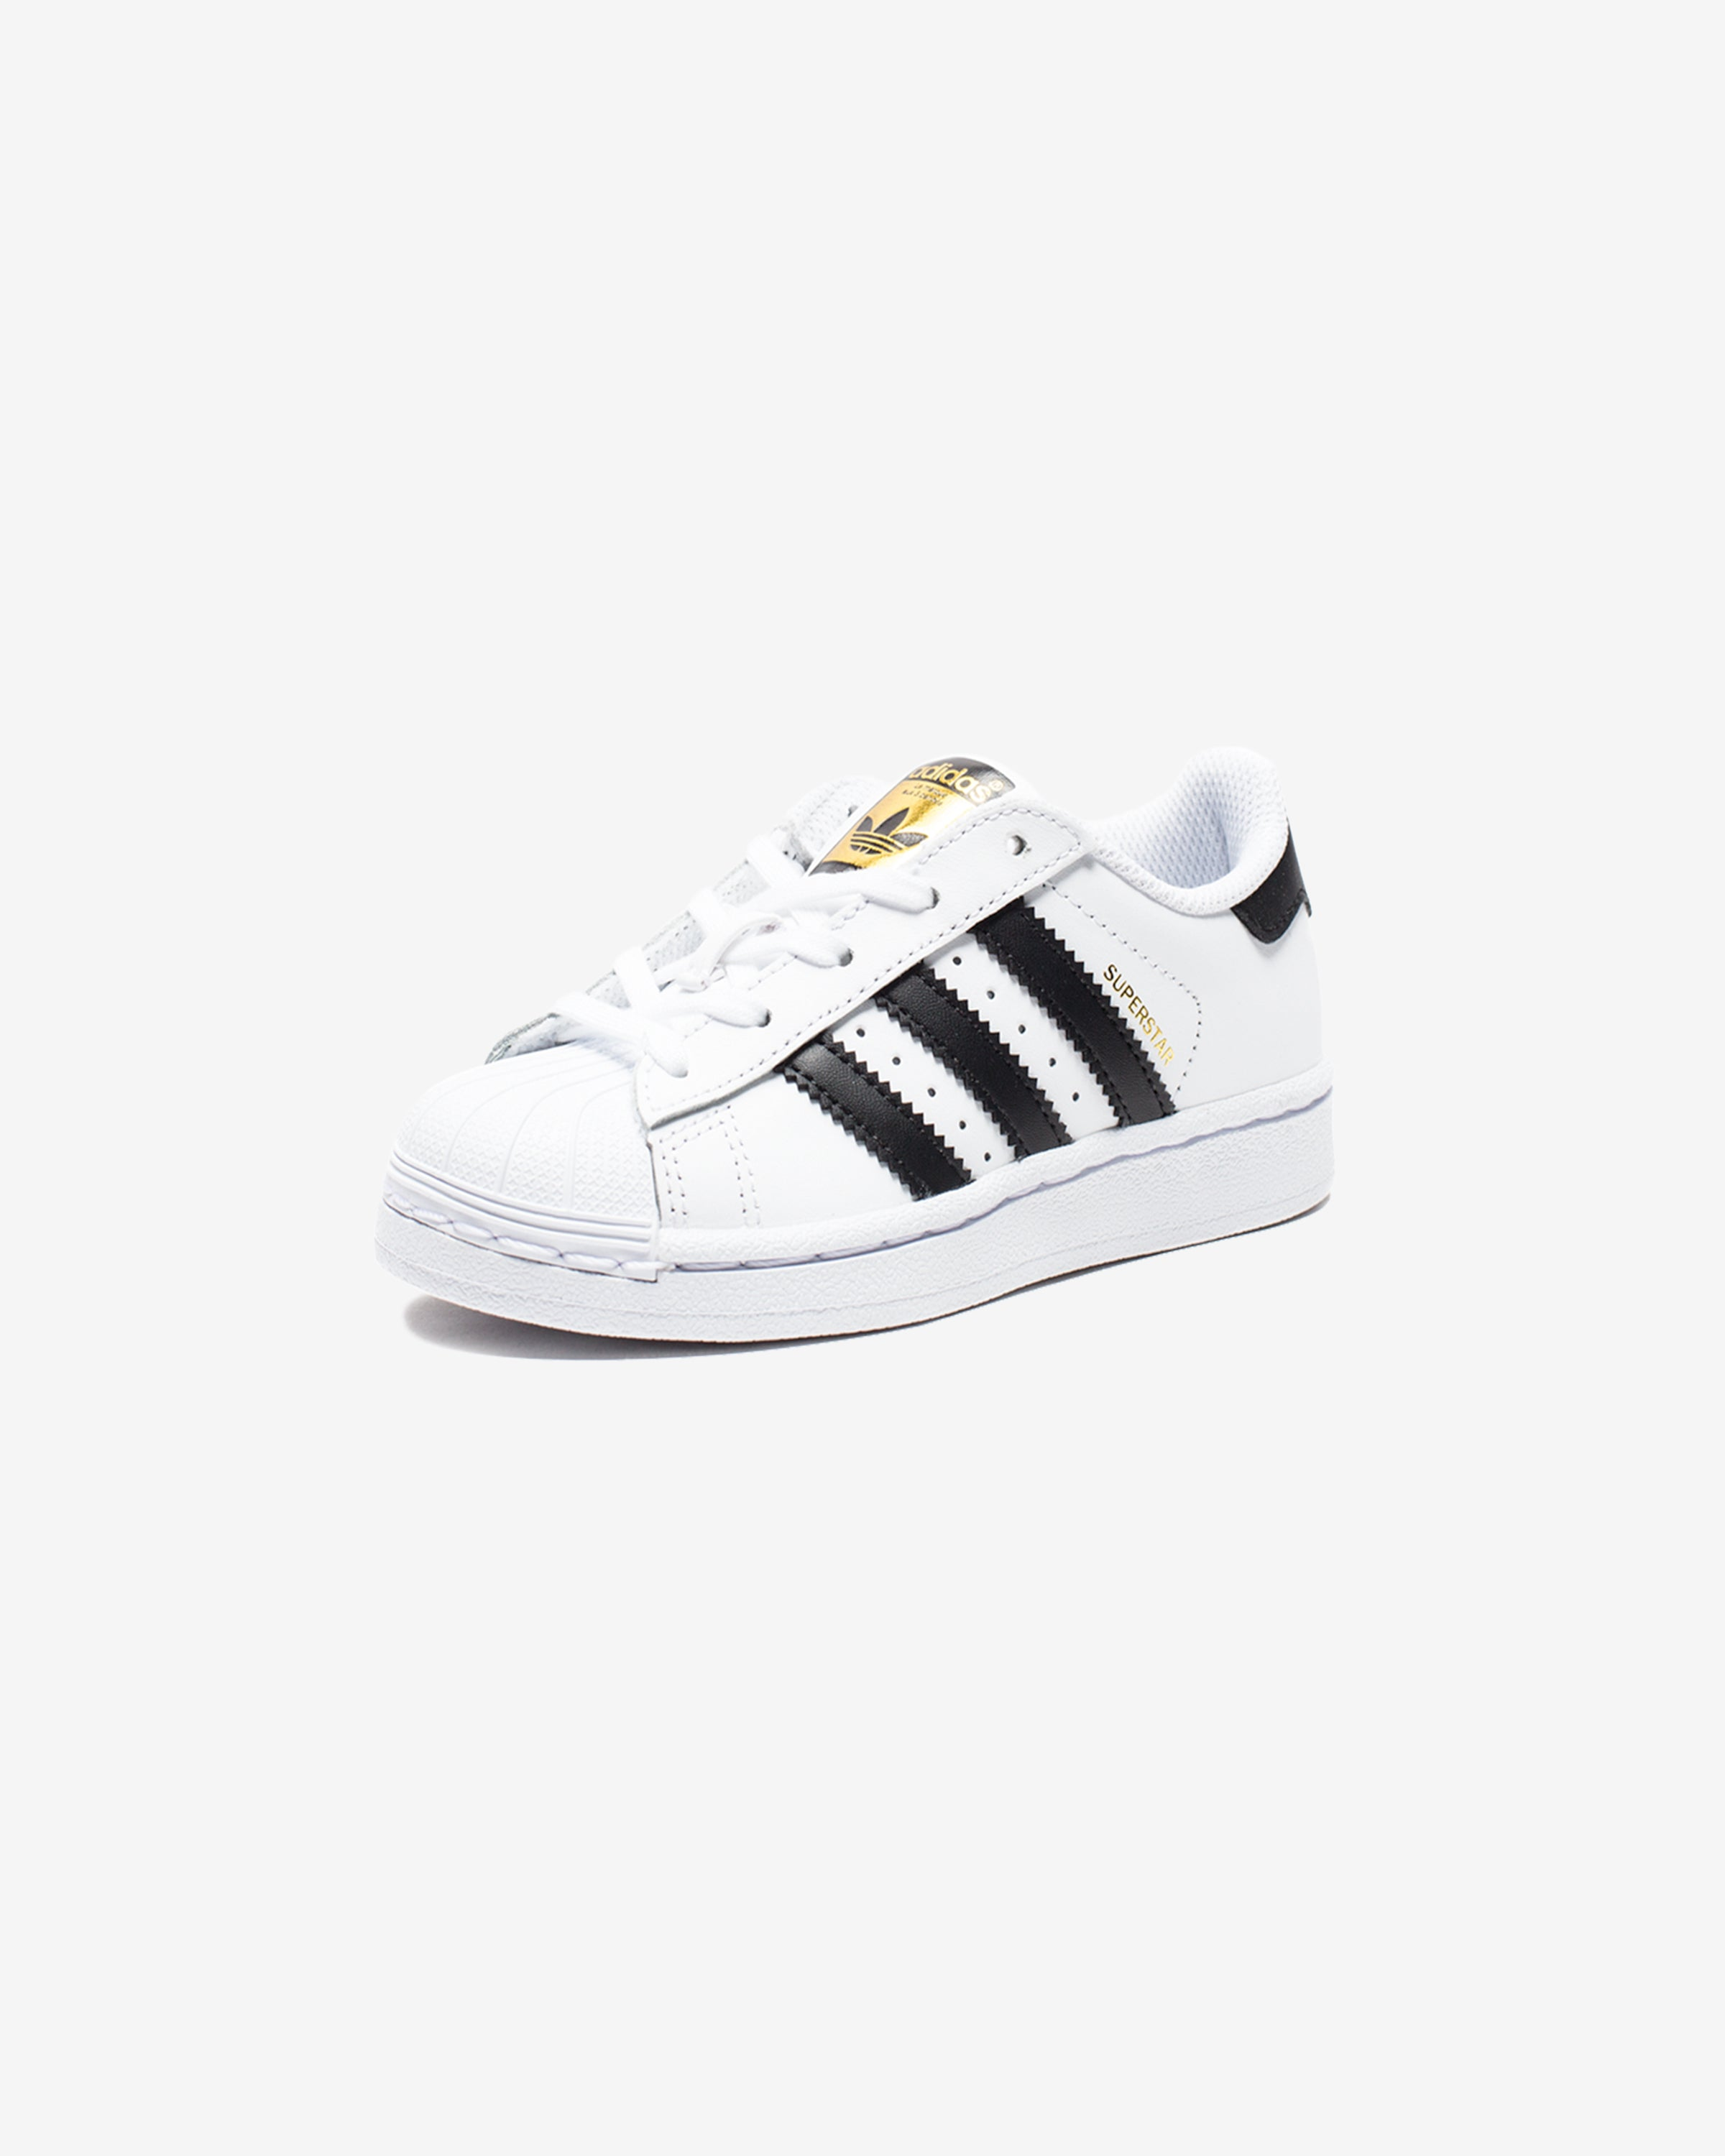 info for 27948 69357 foootwear adidas ps-superstar-96 C77394.view 1.jpg v 1497982075